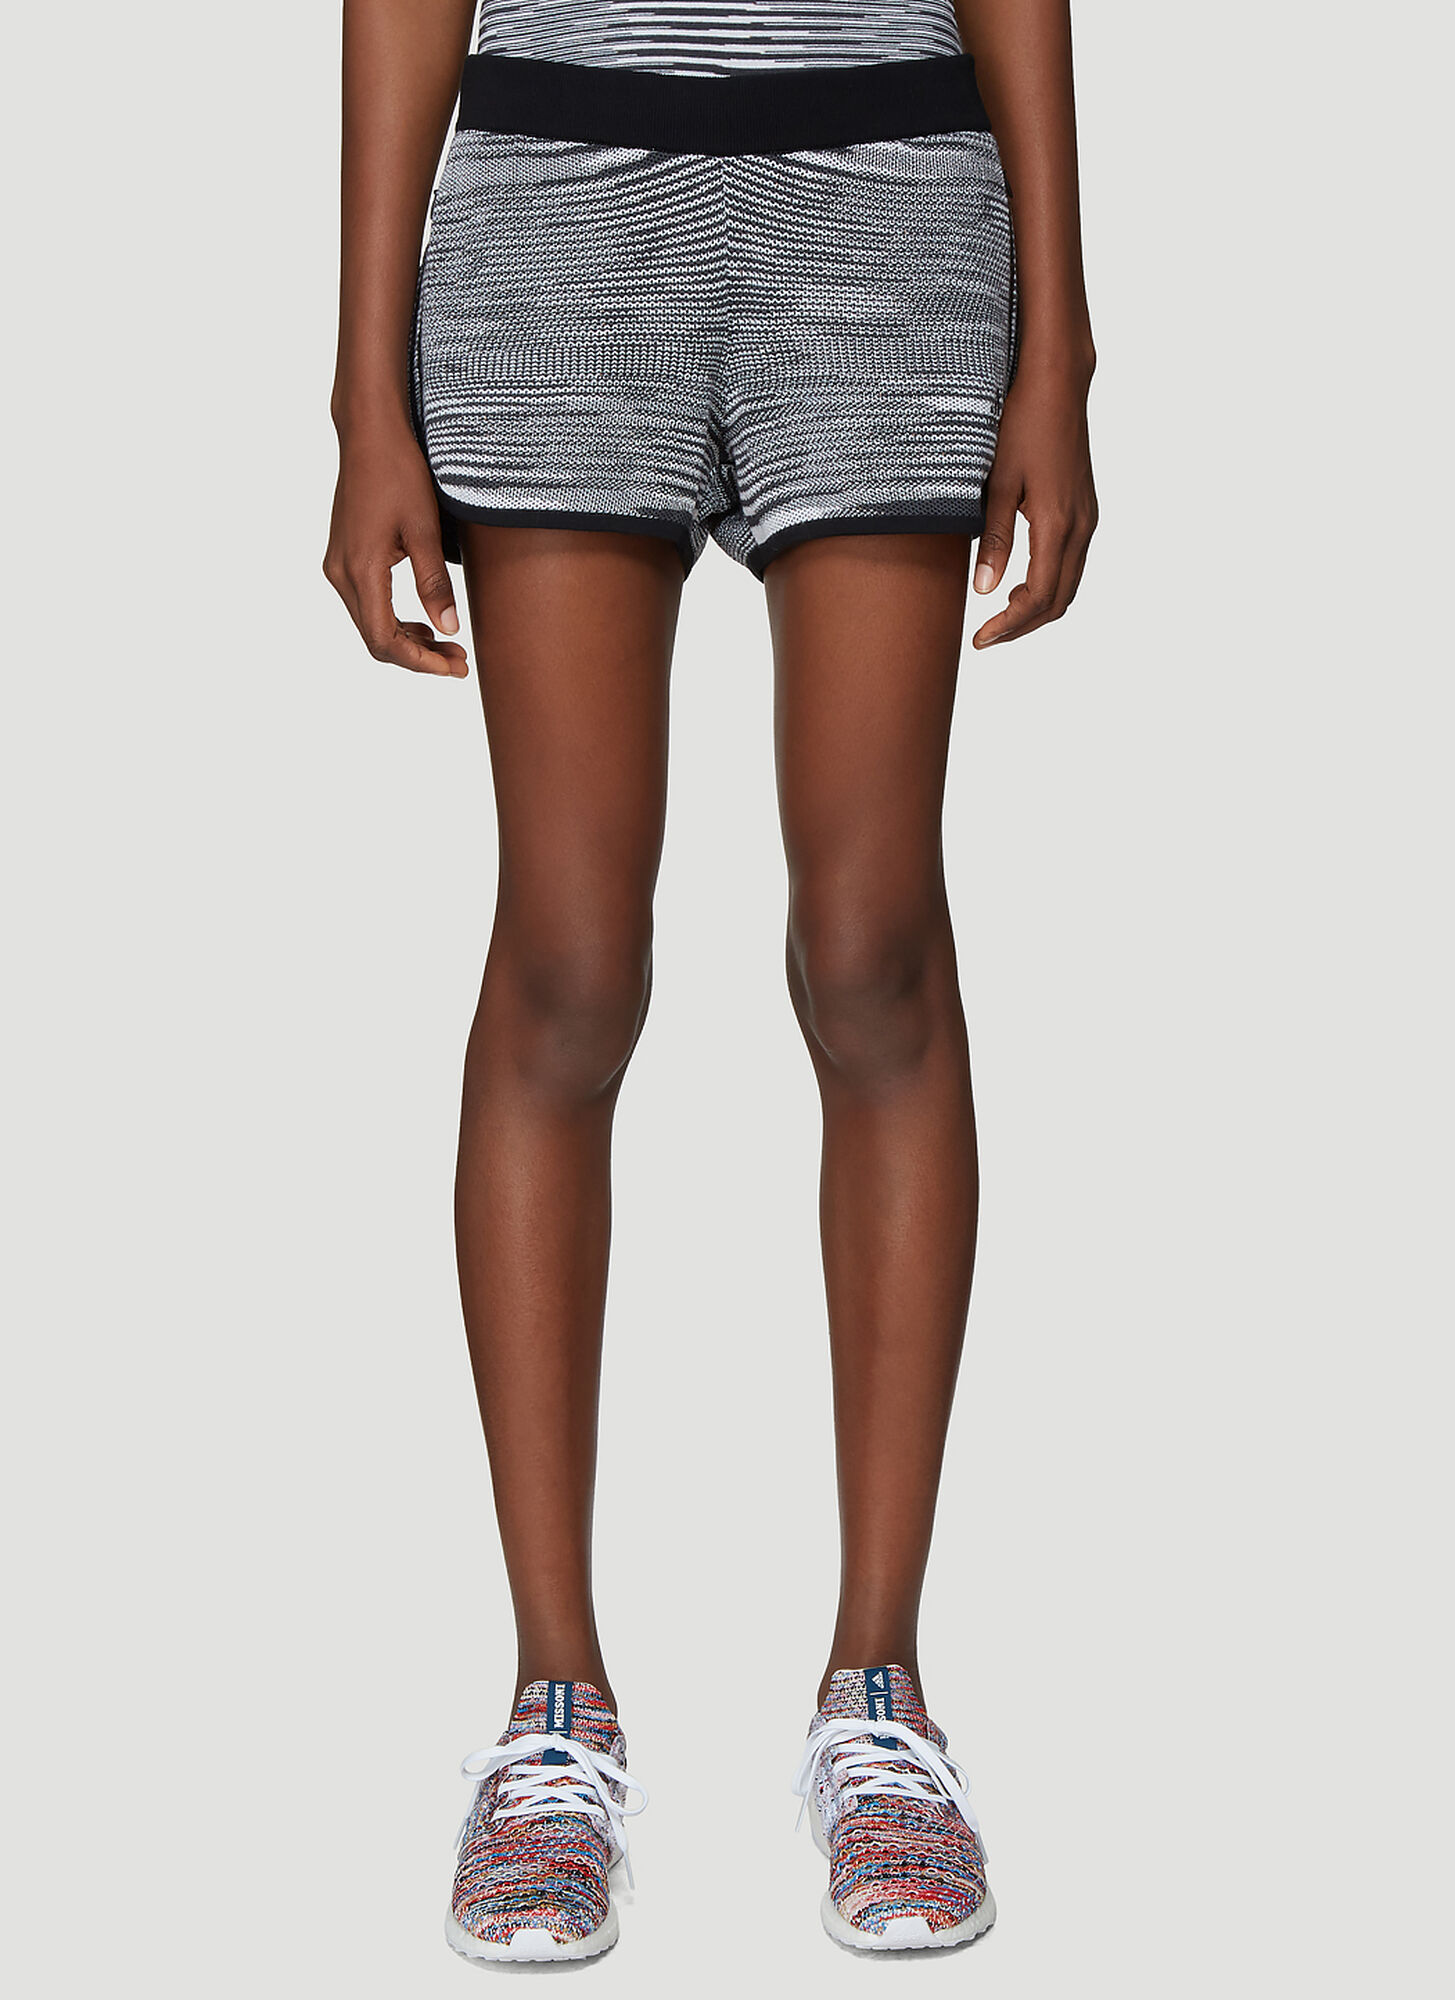 Adidas x Missoni X Missoni Marathon 20 Shorts in Grey